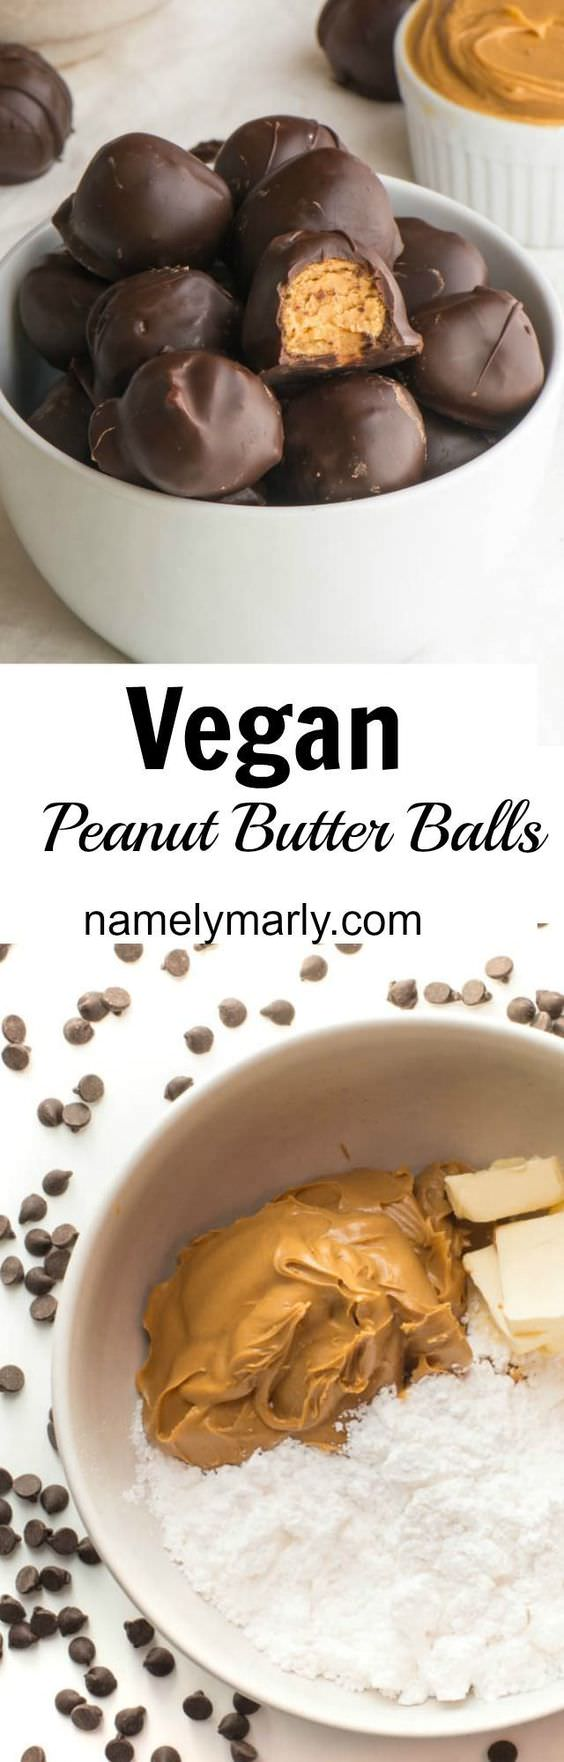 Who said vegan isn't fun? Say goodbye to cholesterol-laden peanut butter balls, and say hello to these vegan peanut butter balls covered in chocolate.